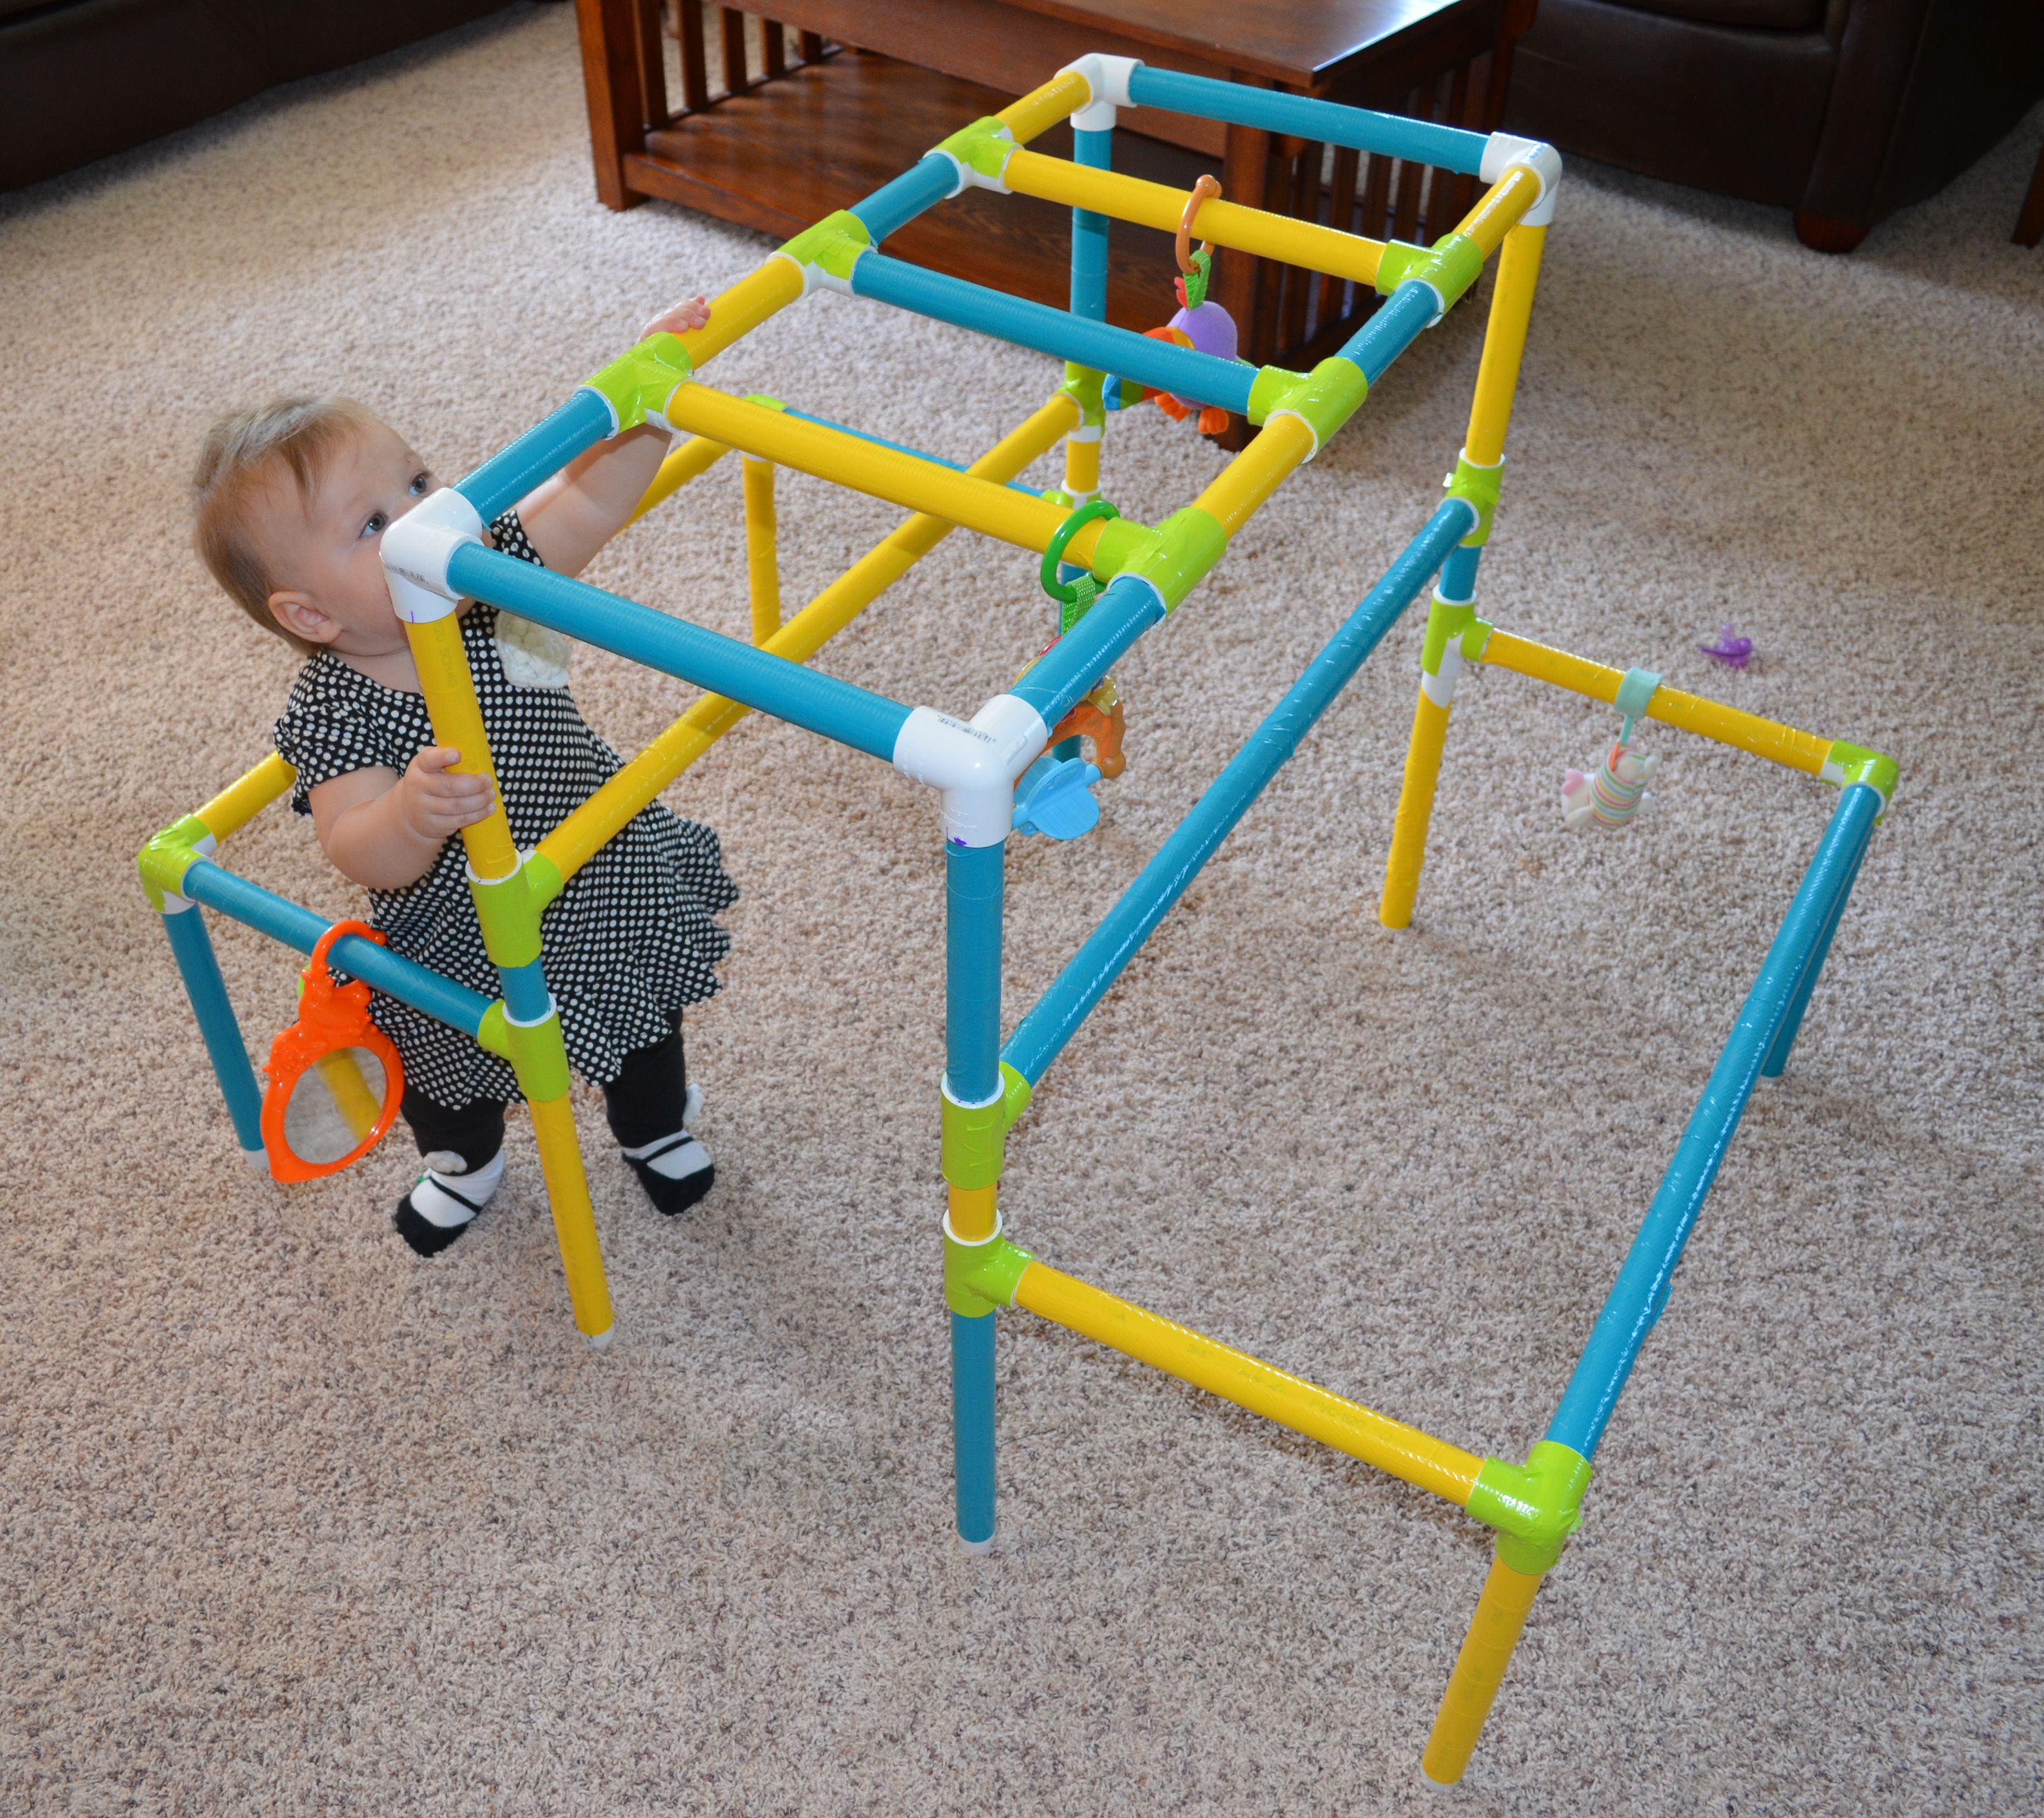 Our granddaughter loves her jungle gym Baby